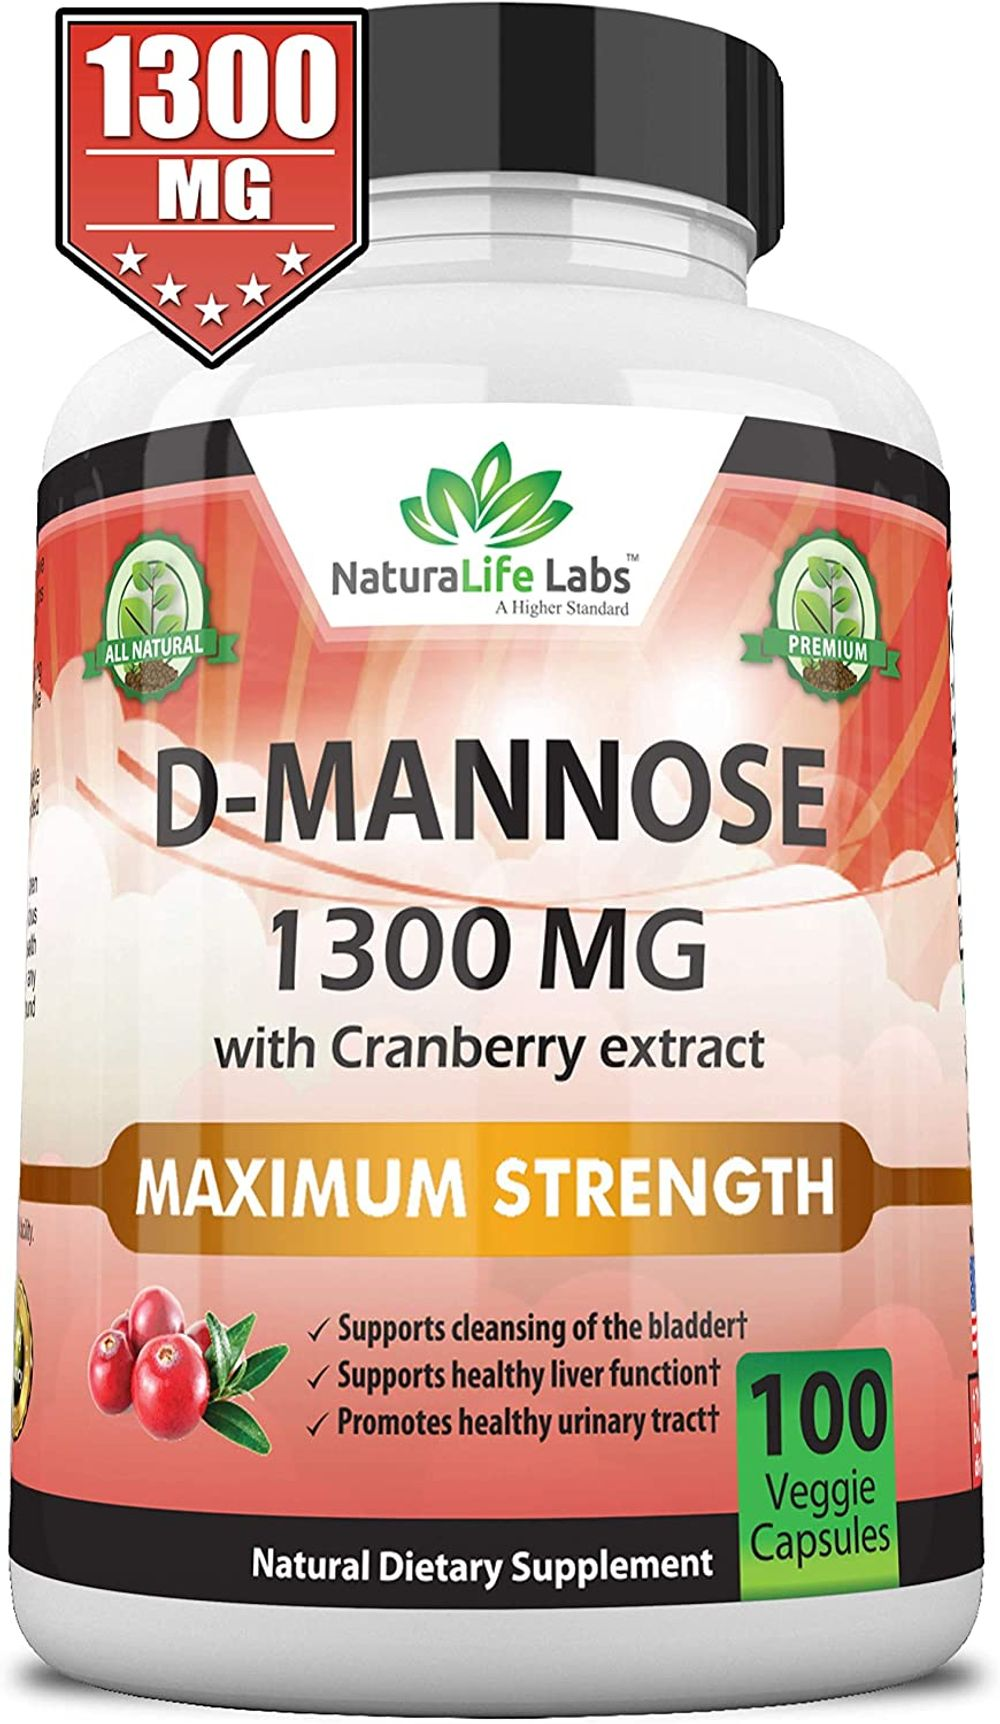 D-Mannose 1,300 mg with Cranberry Extract Fast-Acting, Flush Impurities, Natural Urinary Tract Health- 100 Veggie Capsules